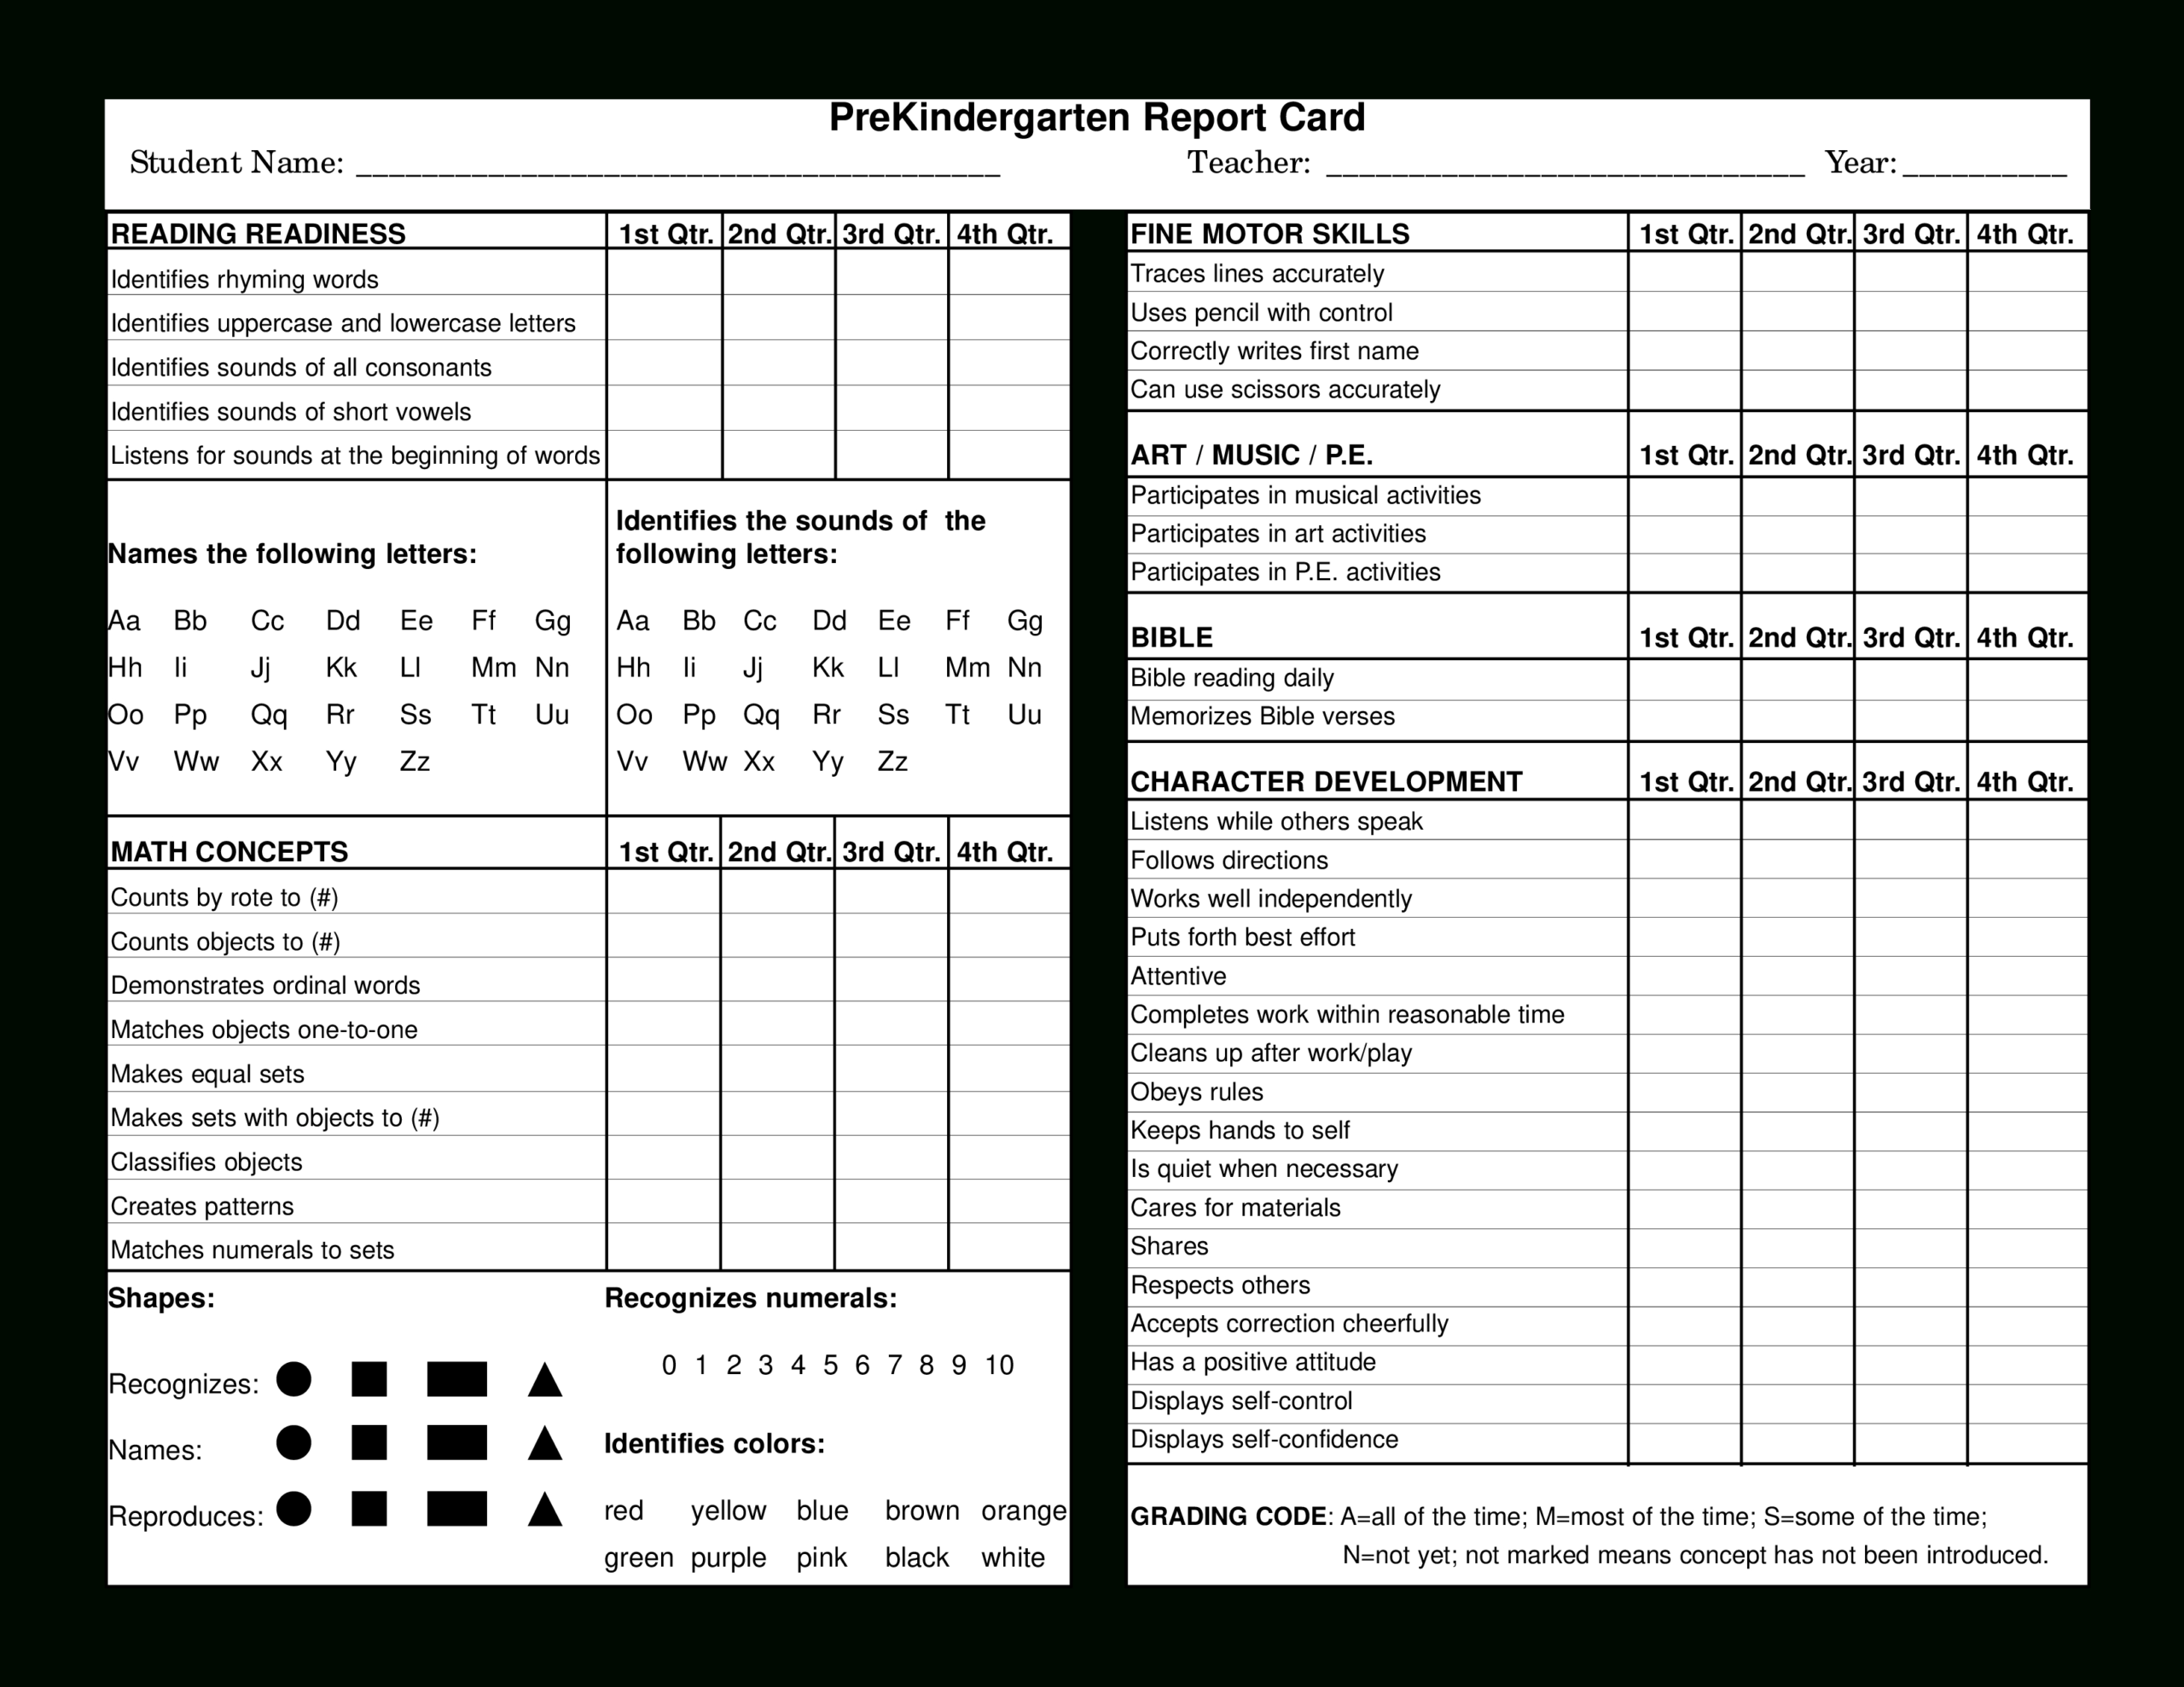 Preschool Report Card | Templates At Allbusinesstemplates With Regard To Character Report Card Template